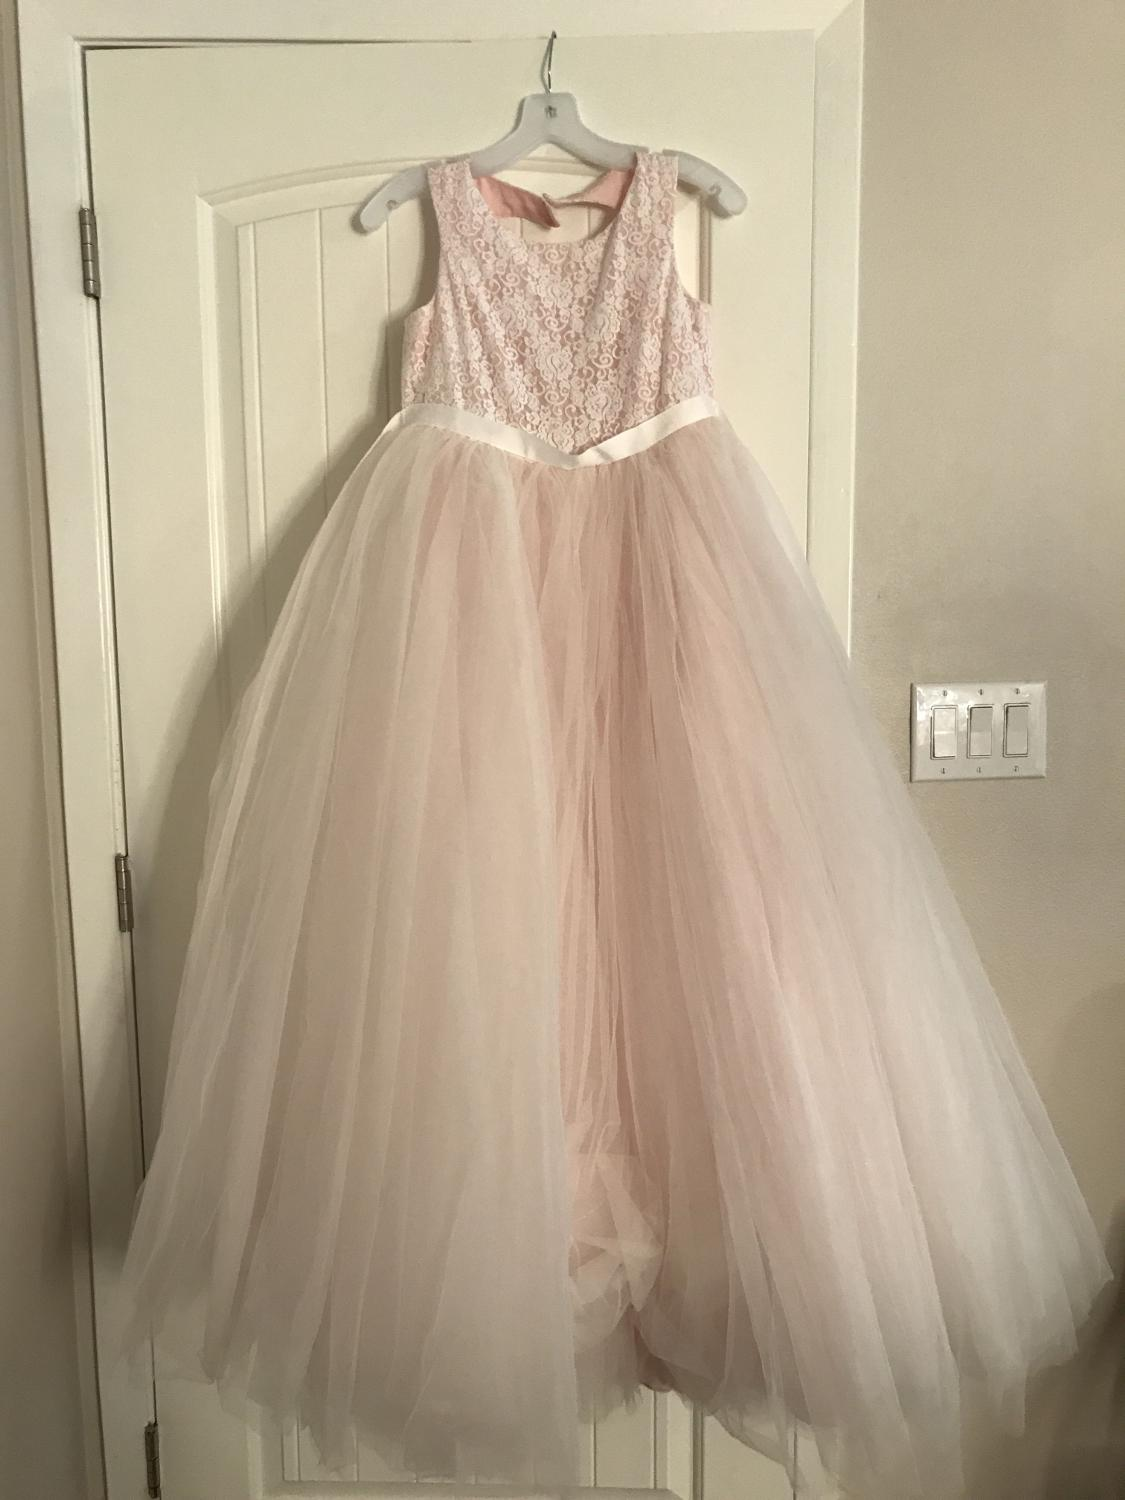 Best Flower Girl Dress From David's Bridal Size 18 for sale in ...